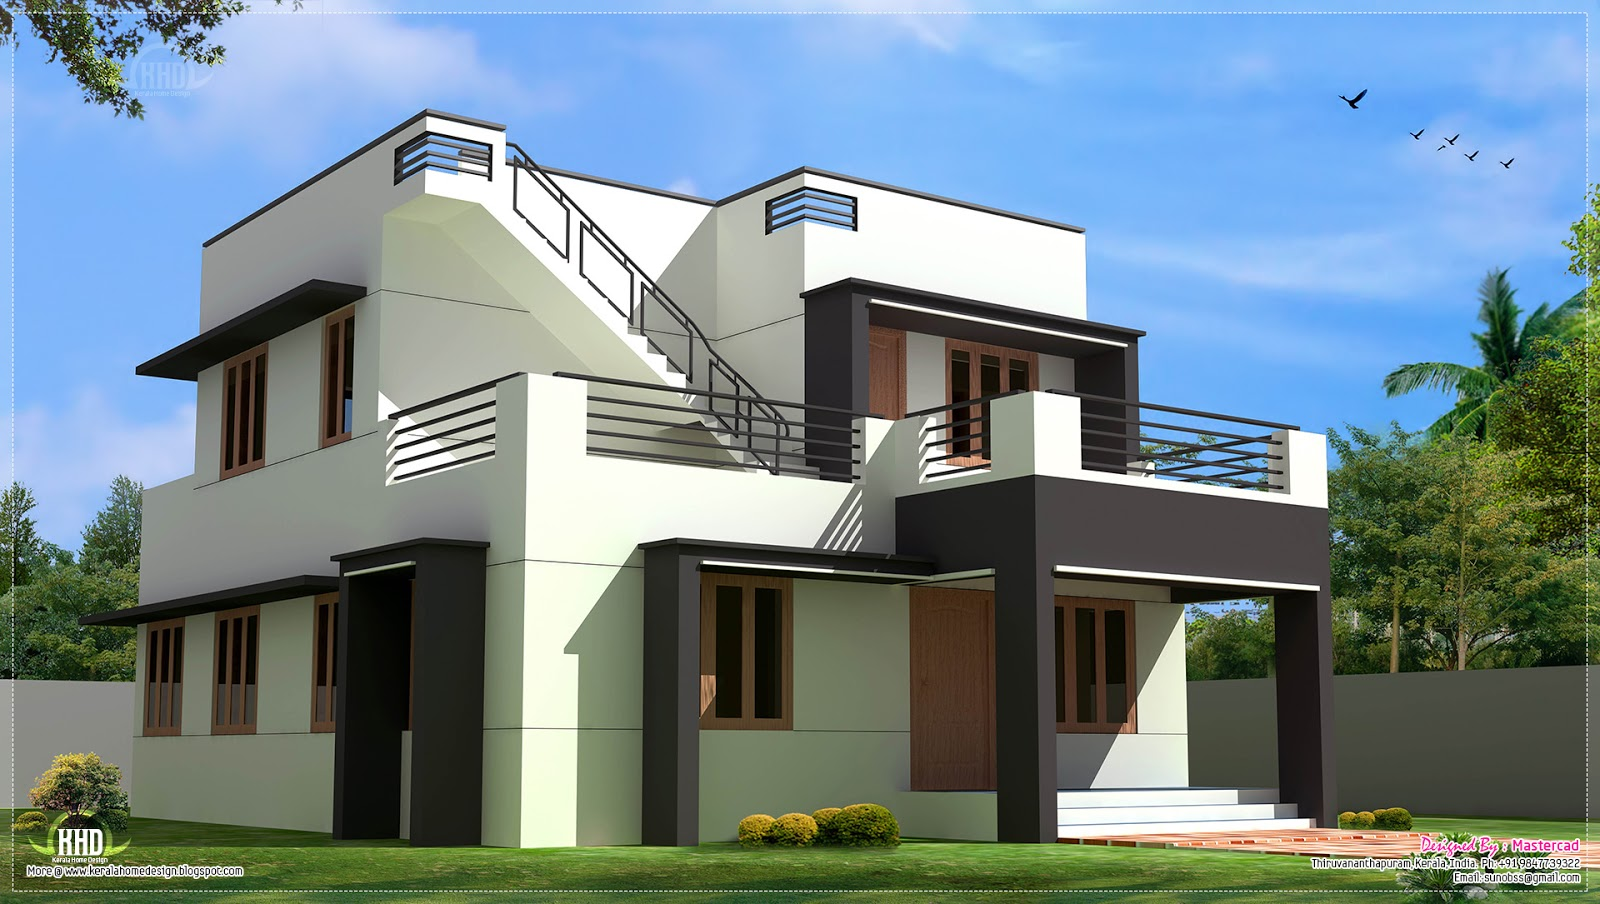 Modern house design in 1700 kerala home design for Best architecture home design in india